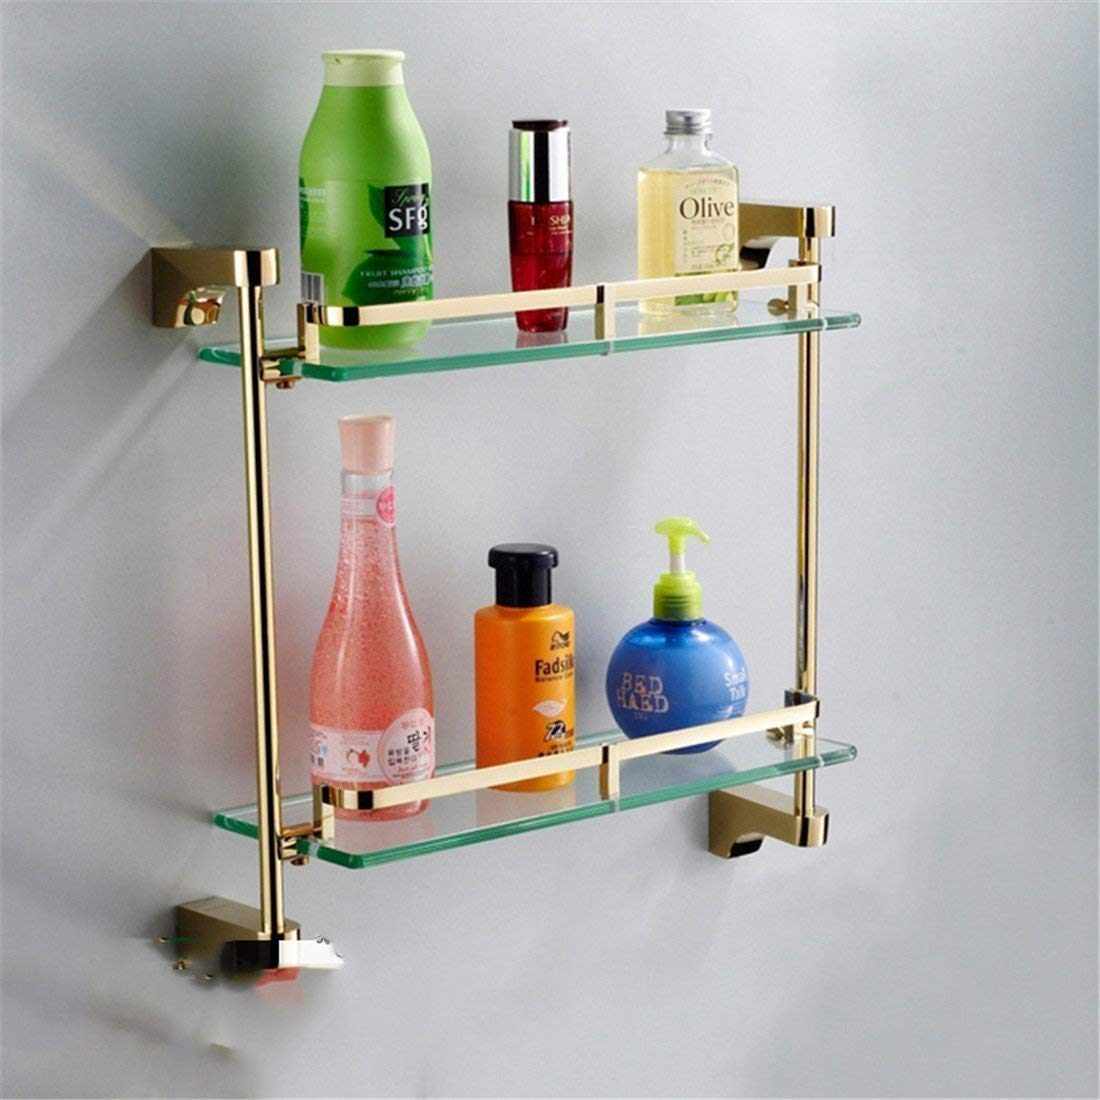 BRNEBN The Copper The Gold of Simple Accessories of Costumes of Bath of Boxes to soap Brush Frame Simple Double Double Pole Pole, (Size : Stacks 2)